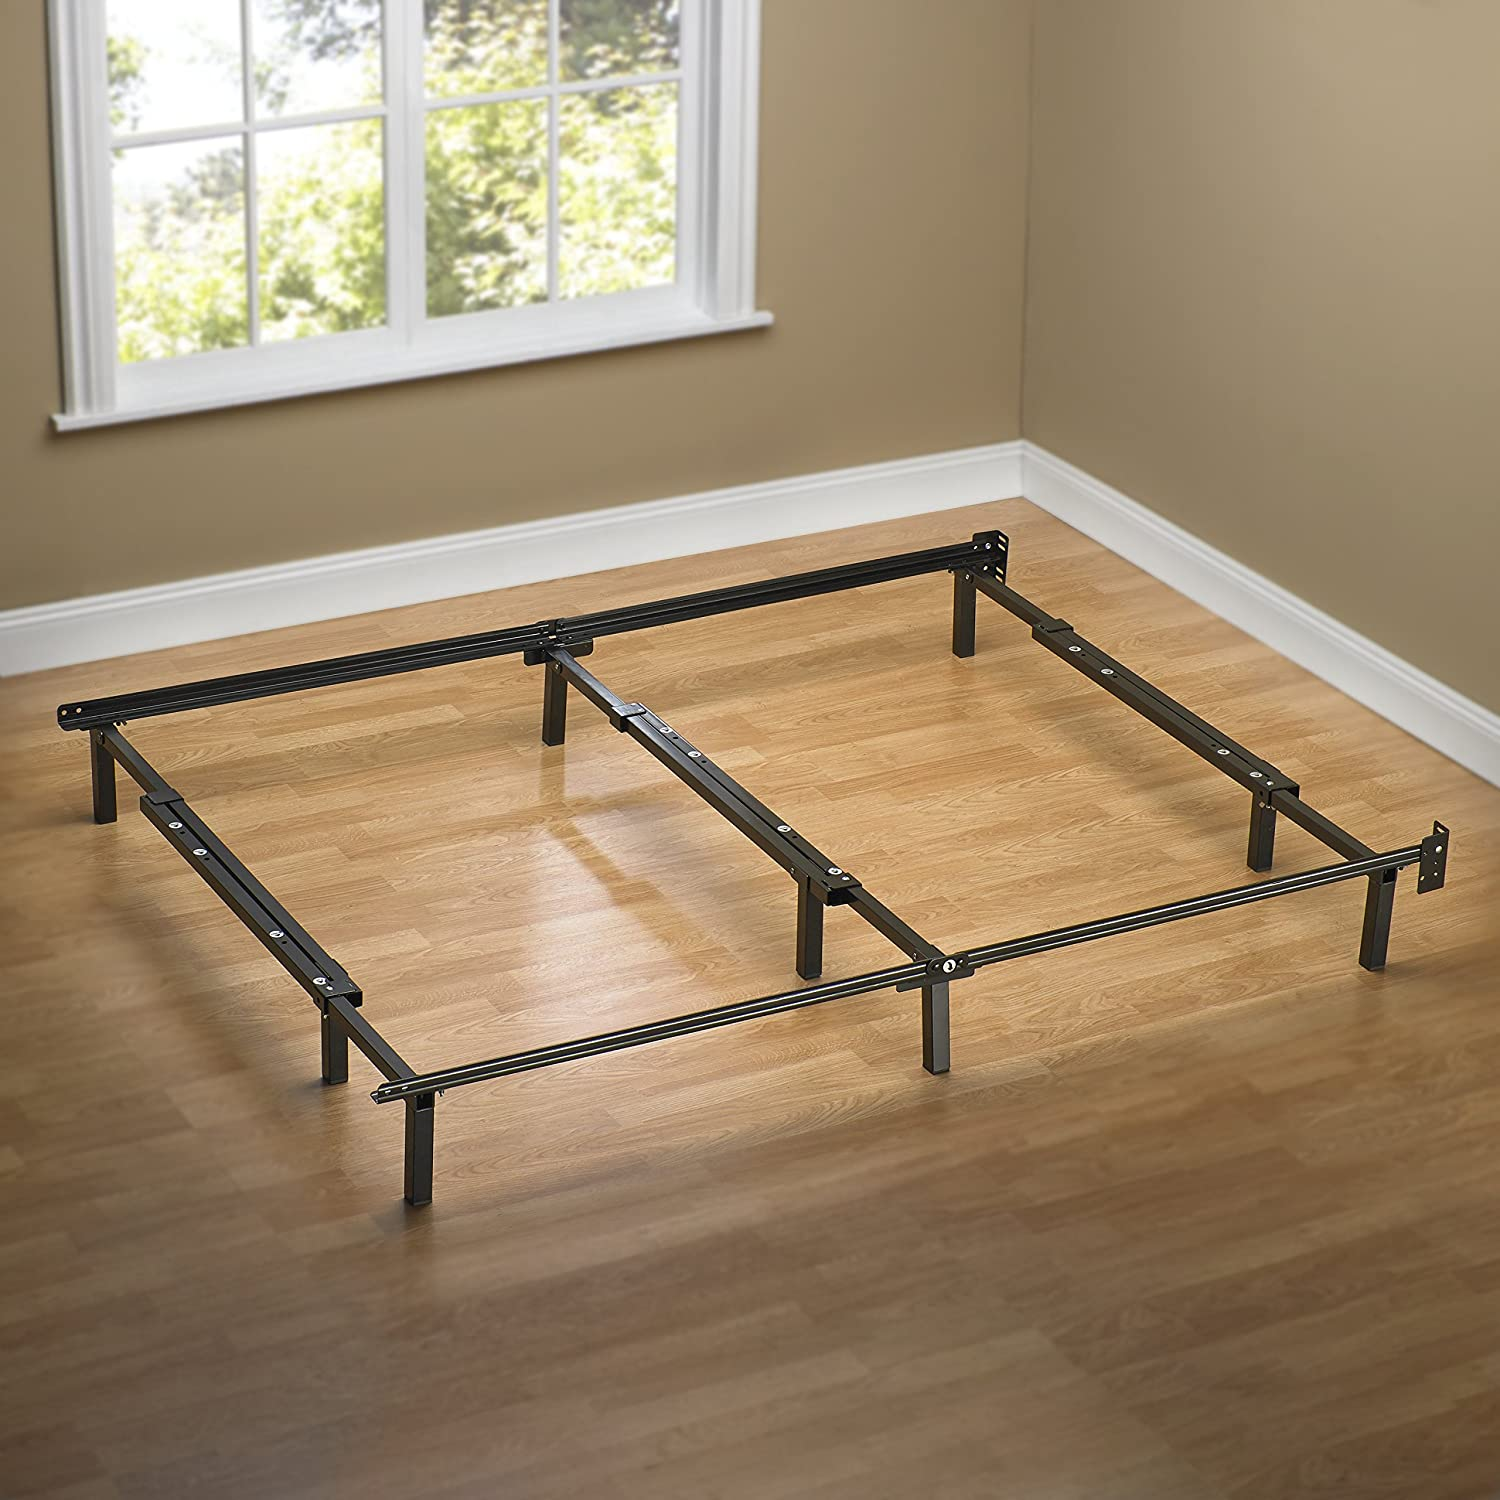 Bed Frames | Amazon.com